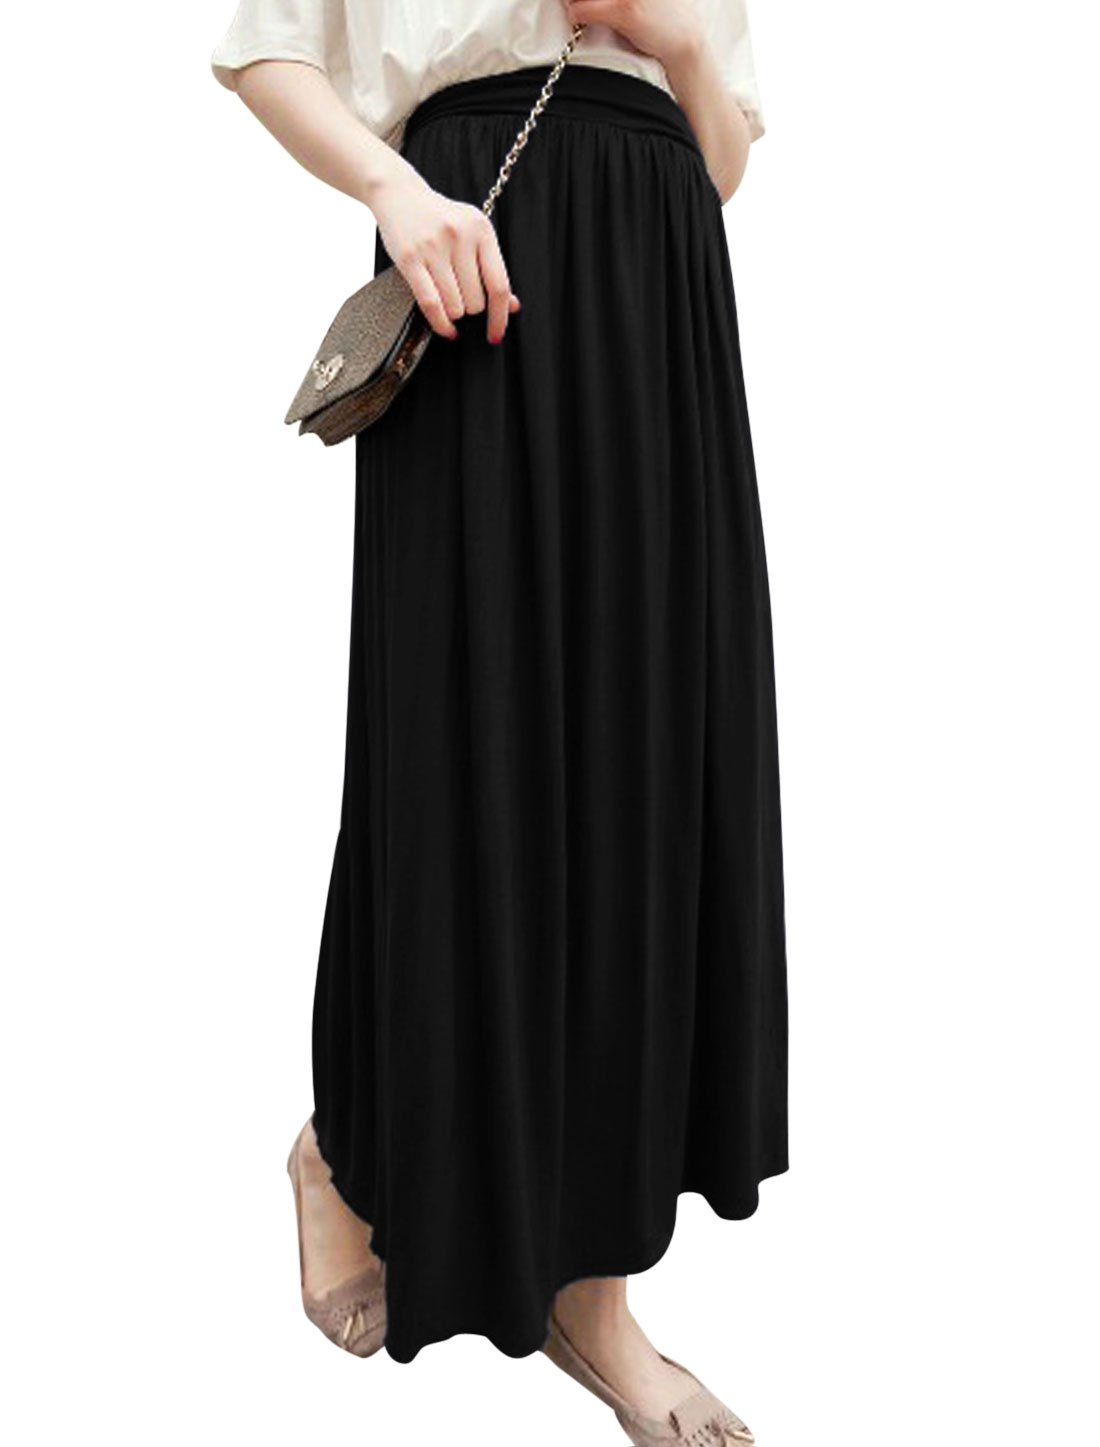 Women Soft Stretchy Waist Pleated Design Maxi Skirt Black XS